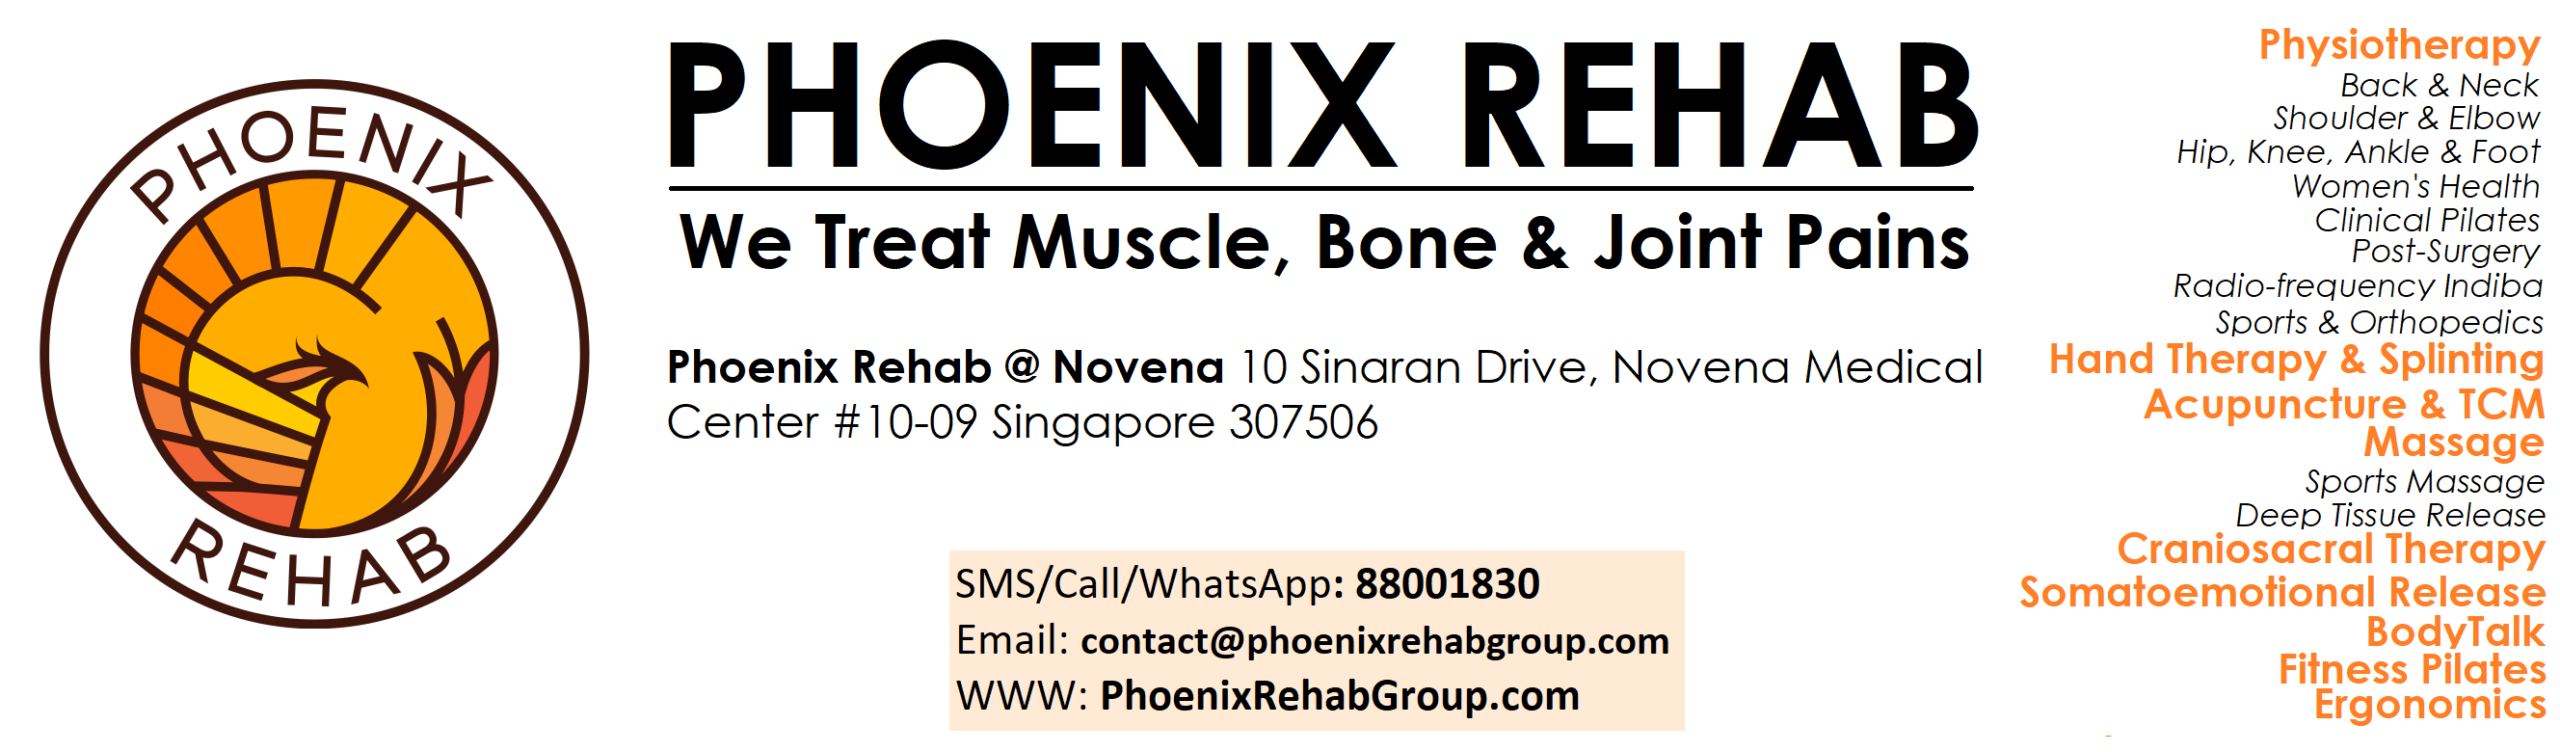 phoenix rehab website header